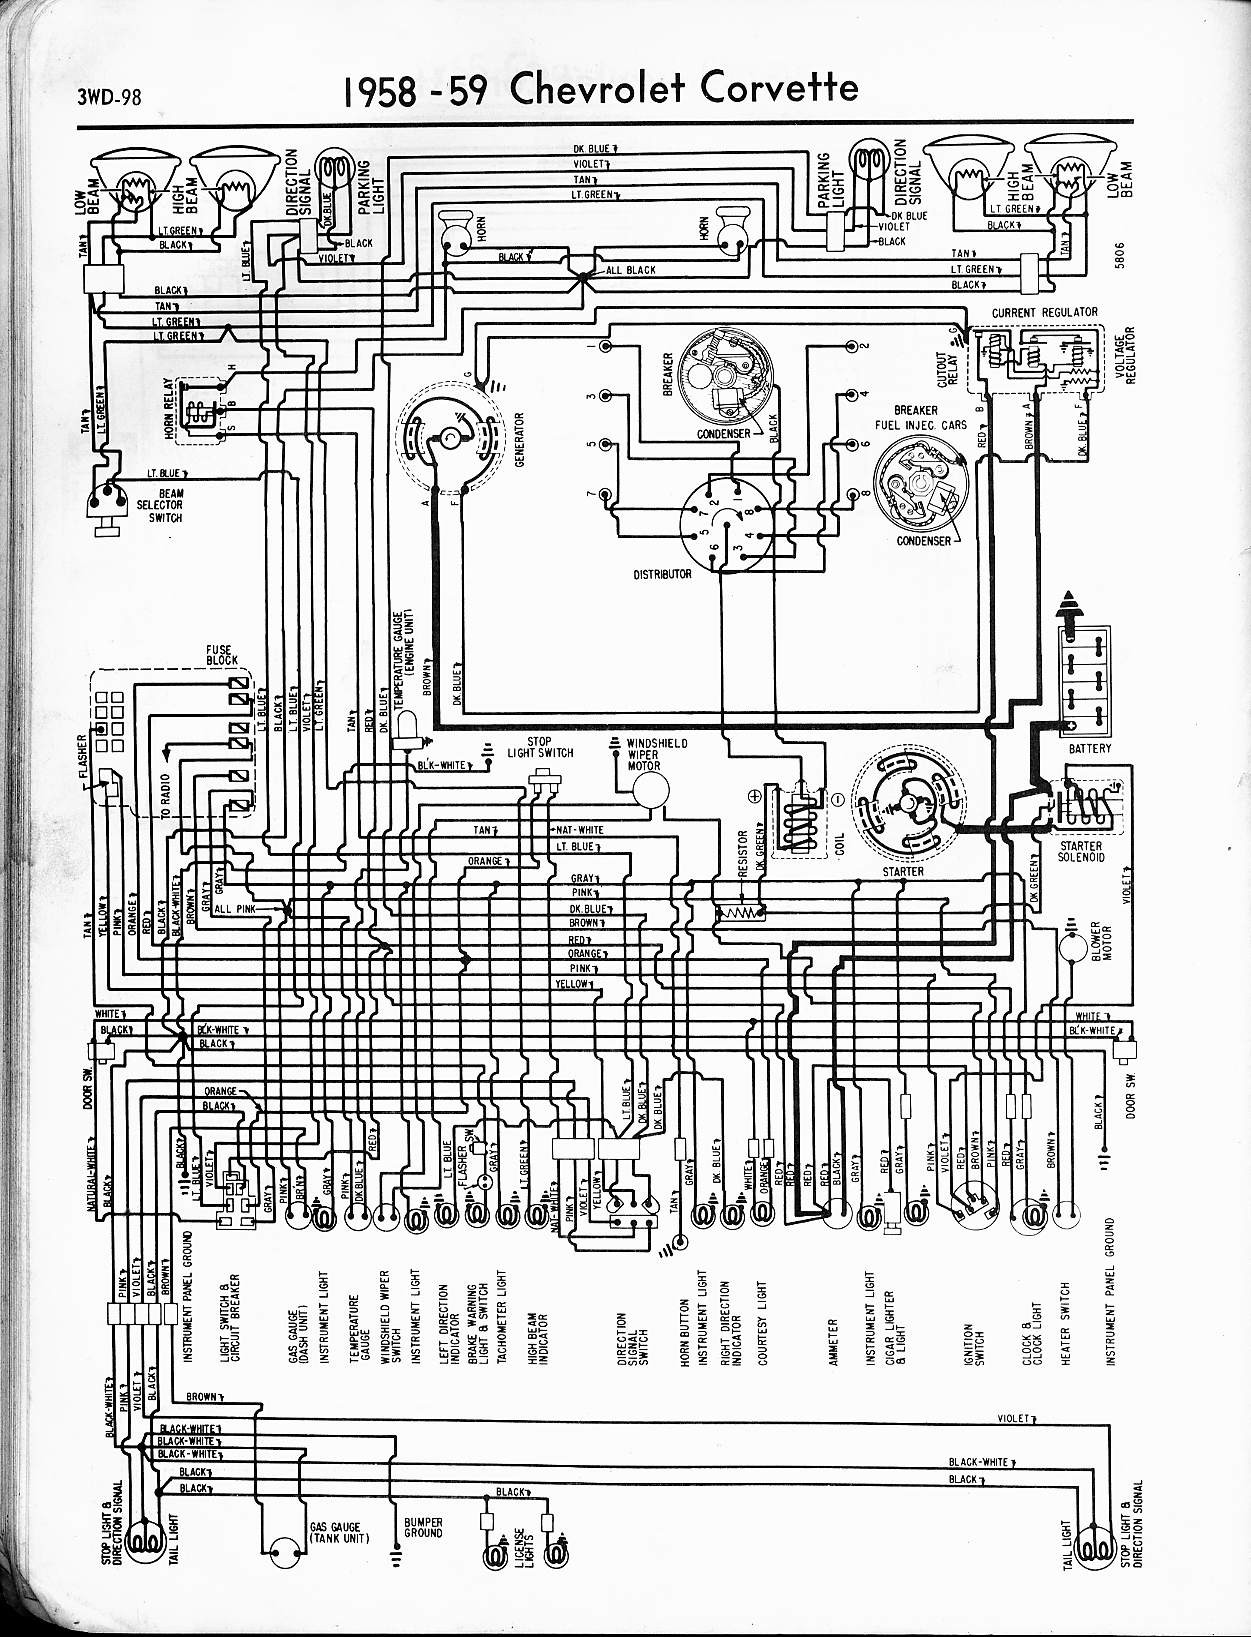 1979 corvette wiring diagram 57 65 chevy wiring diagrams of 1979 corvette wiring diagram headlight wiring